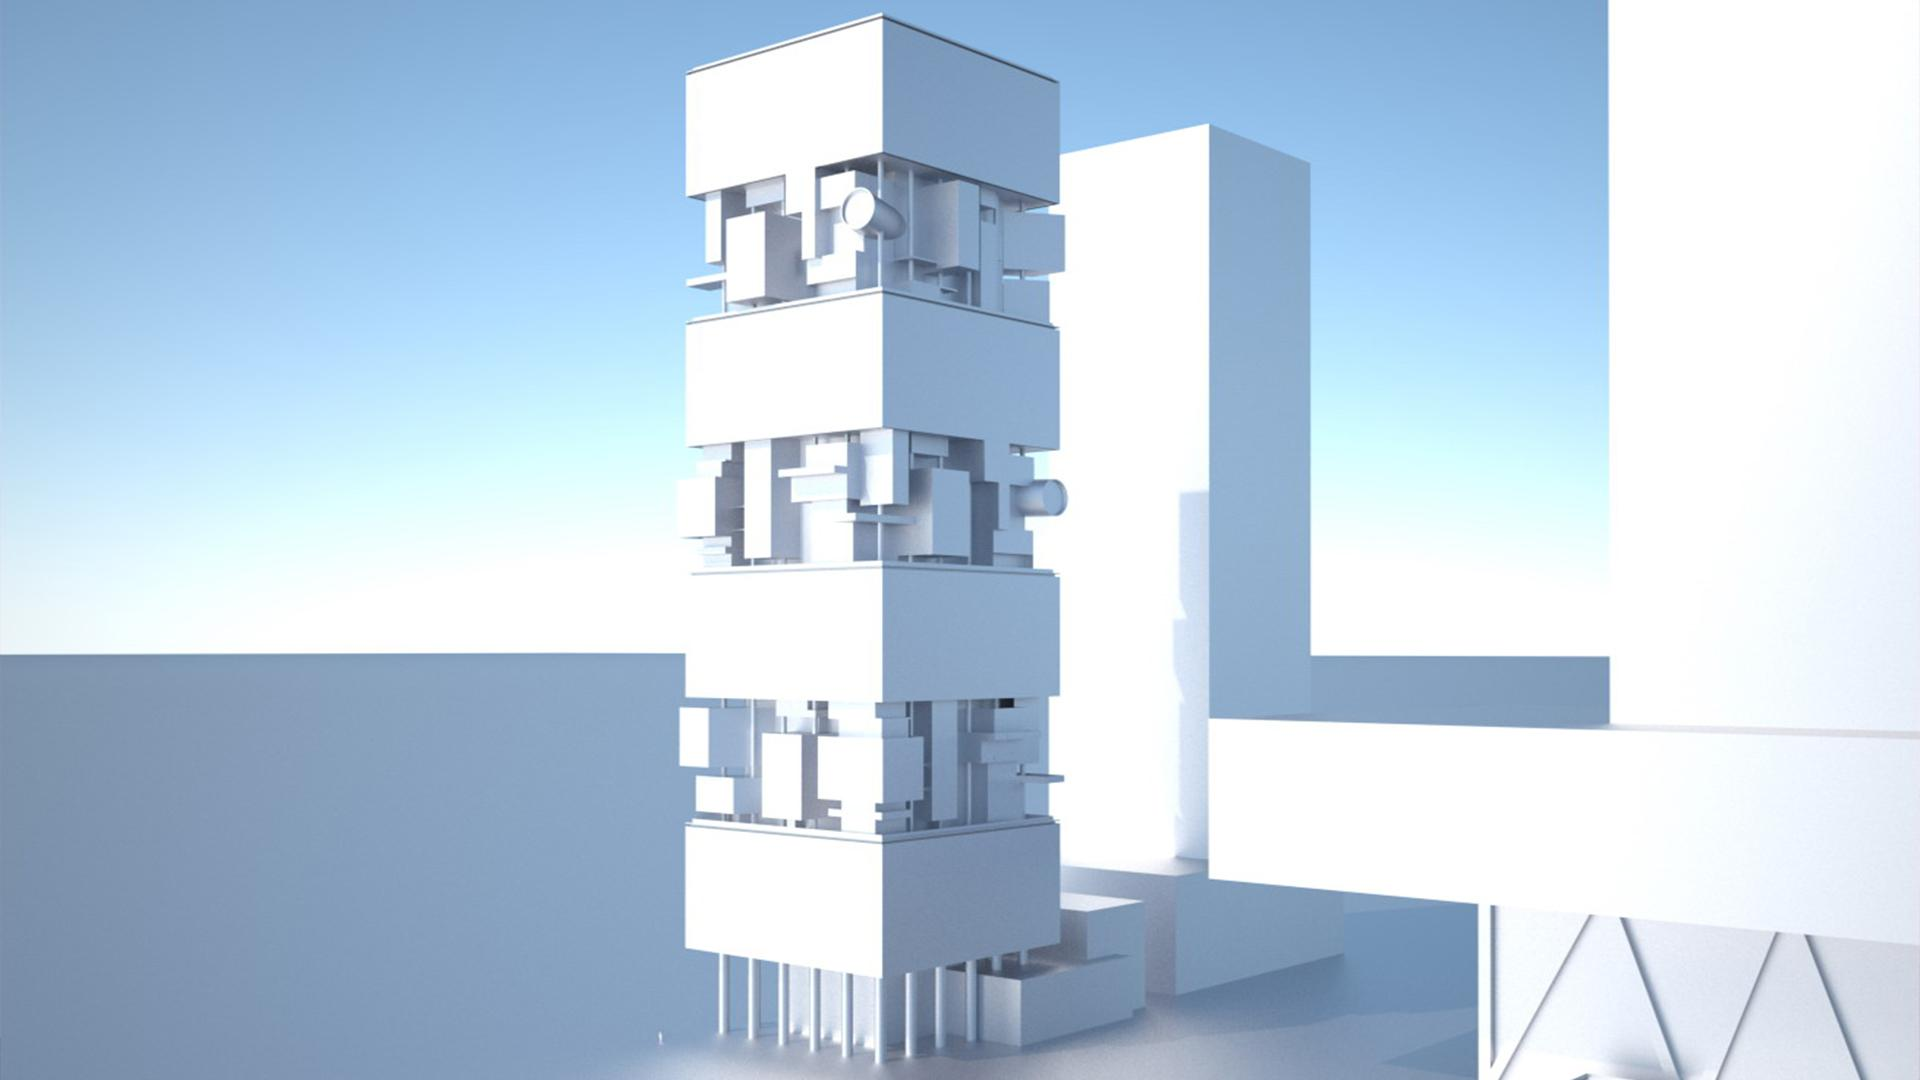 OHA - SBF TOWER 01 - Office For Heuristic Architecture